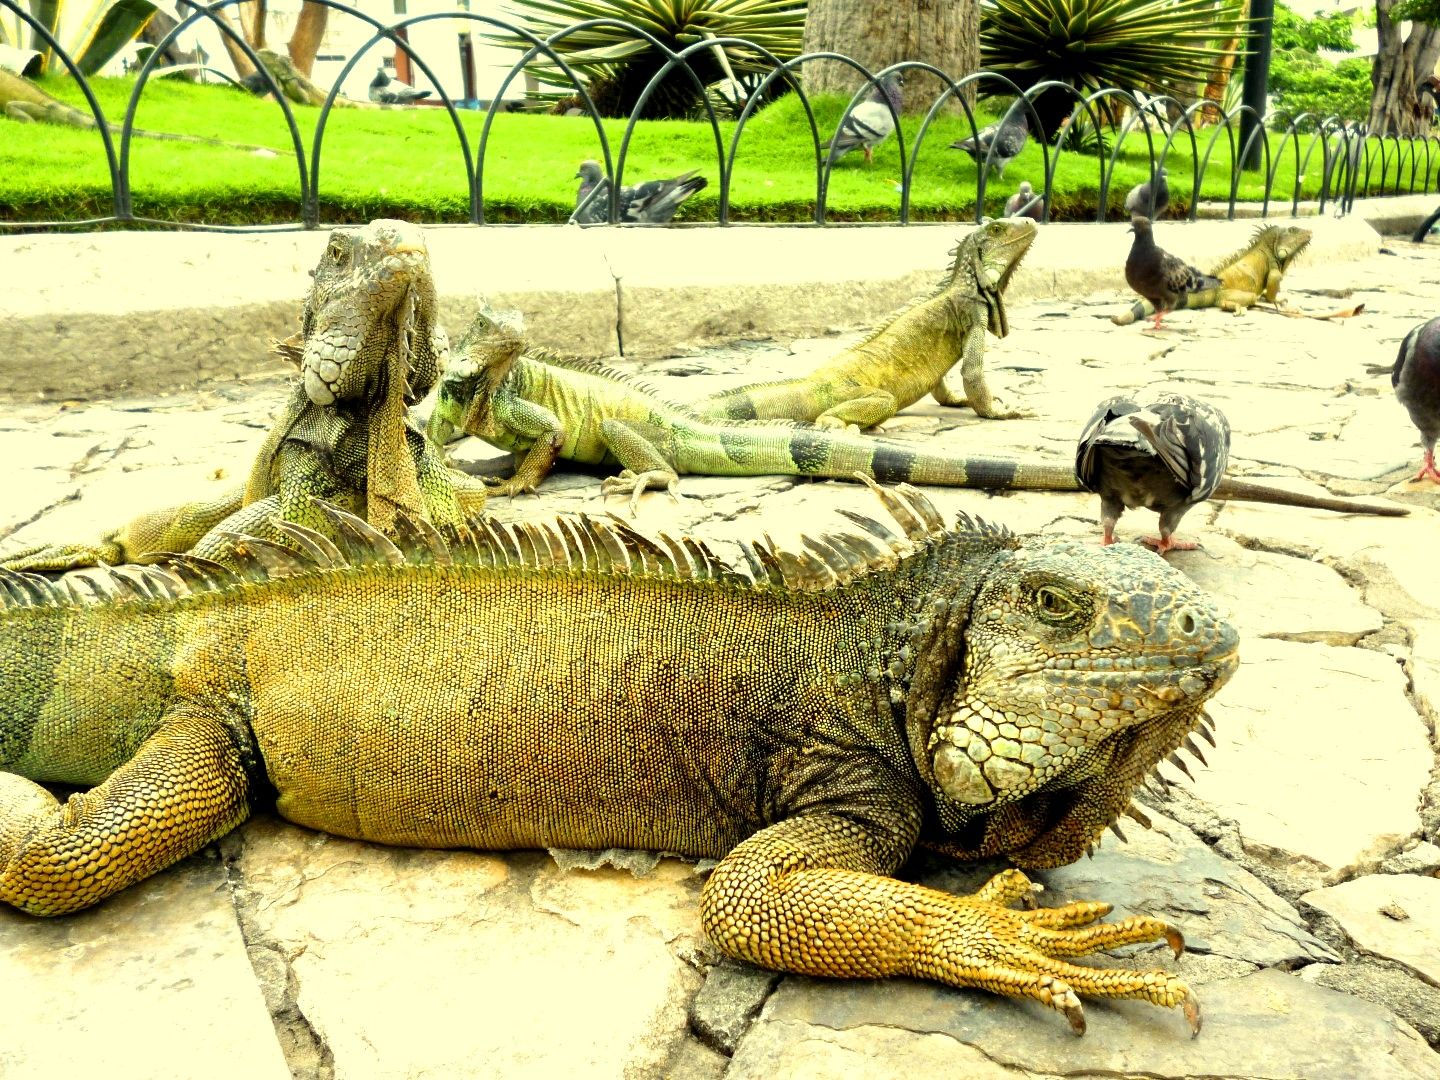 Iguanas walking in a the park across the street from Guayaquil's cathedral.